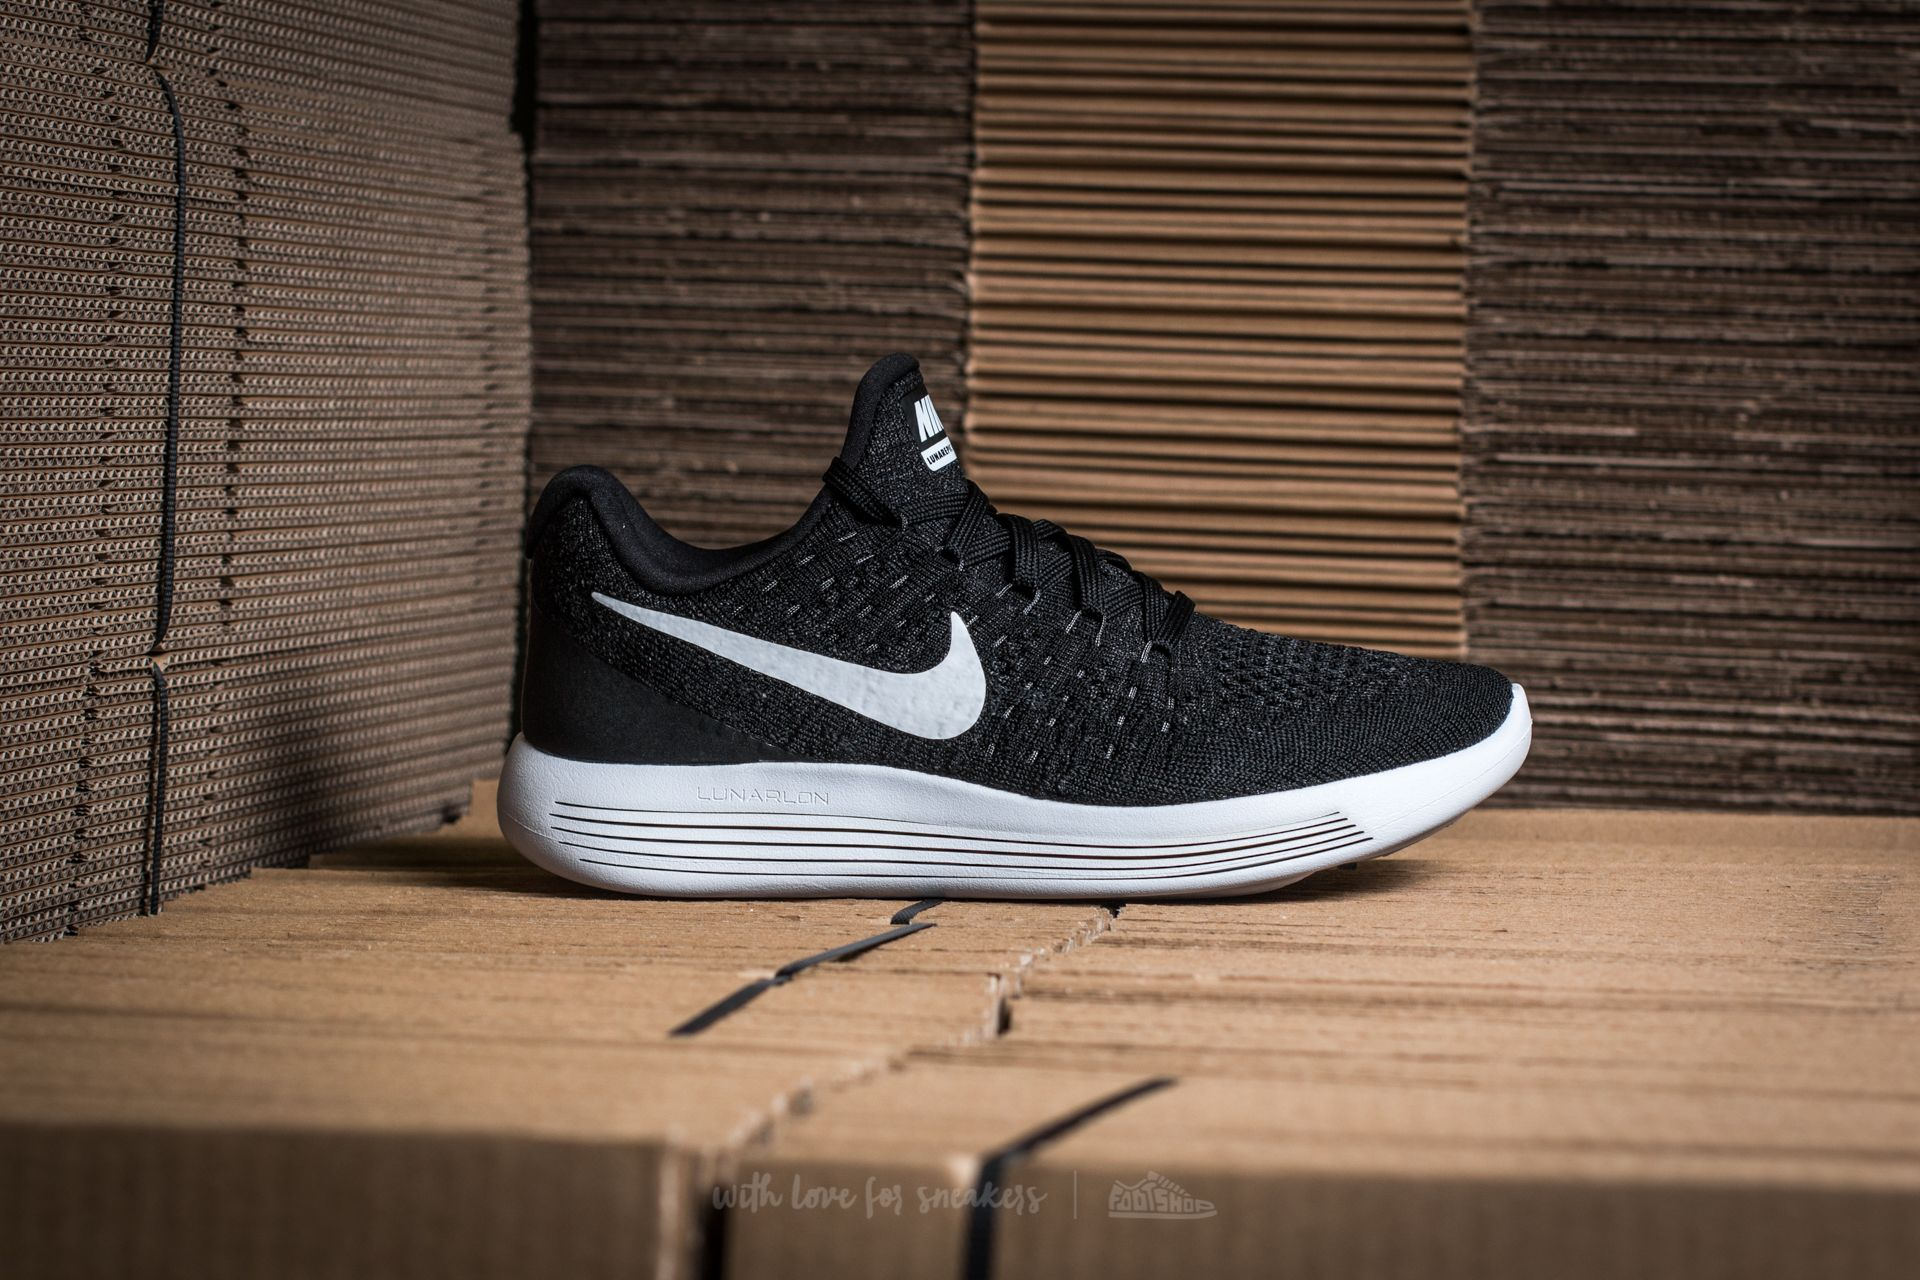 the best attitude bc897 37d99 NIke W Lunarepic Low Flyknit 2 Black  White-Anthracite at a great price 77